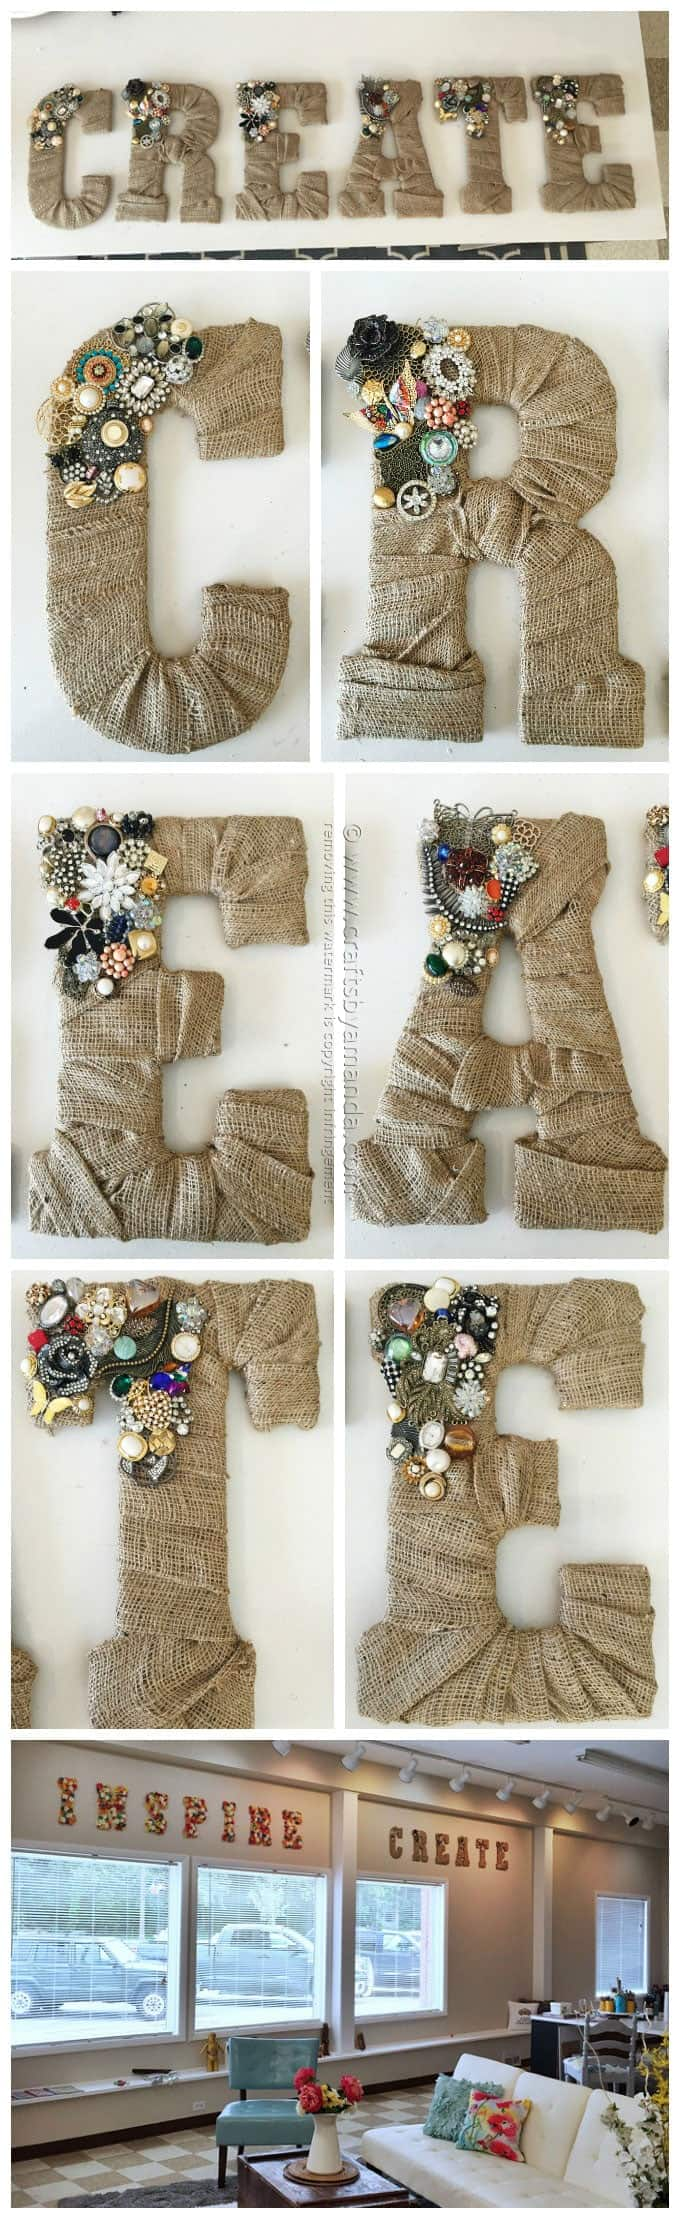 50 Crafts To Make and Sell - Easy DIY Ideas for Cheap Things To Sell on Etsy, Online and for Craft Fairs. Make Money with These Homemade Crafts for Teens, Kids, Christmas, Summer, Mother's Day Gifts. | Vintage Jewel Burlap Wall Letters #crafts #diy